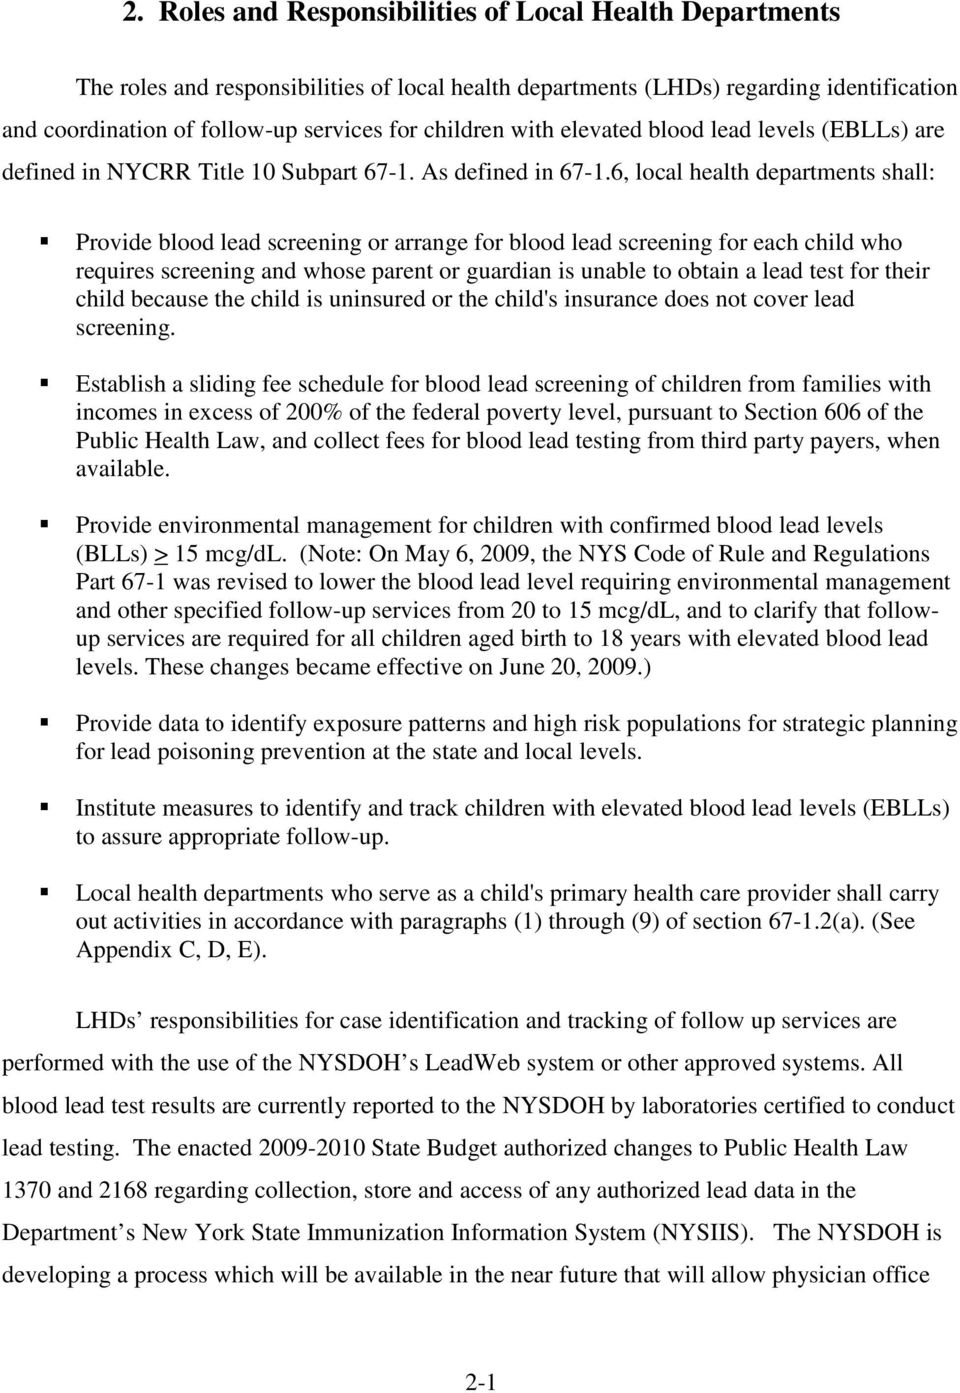 6, local health departments shall: Provide blood lead screening or arrange for blood lead screening for each child who requires screening and whose parent or guardian is unable to obtain a lead test